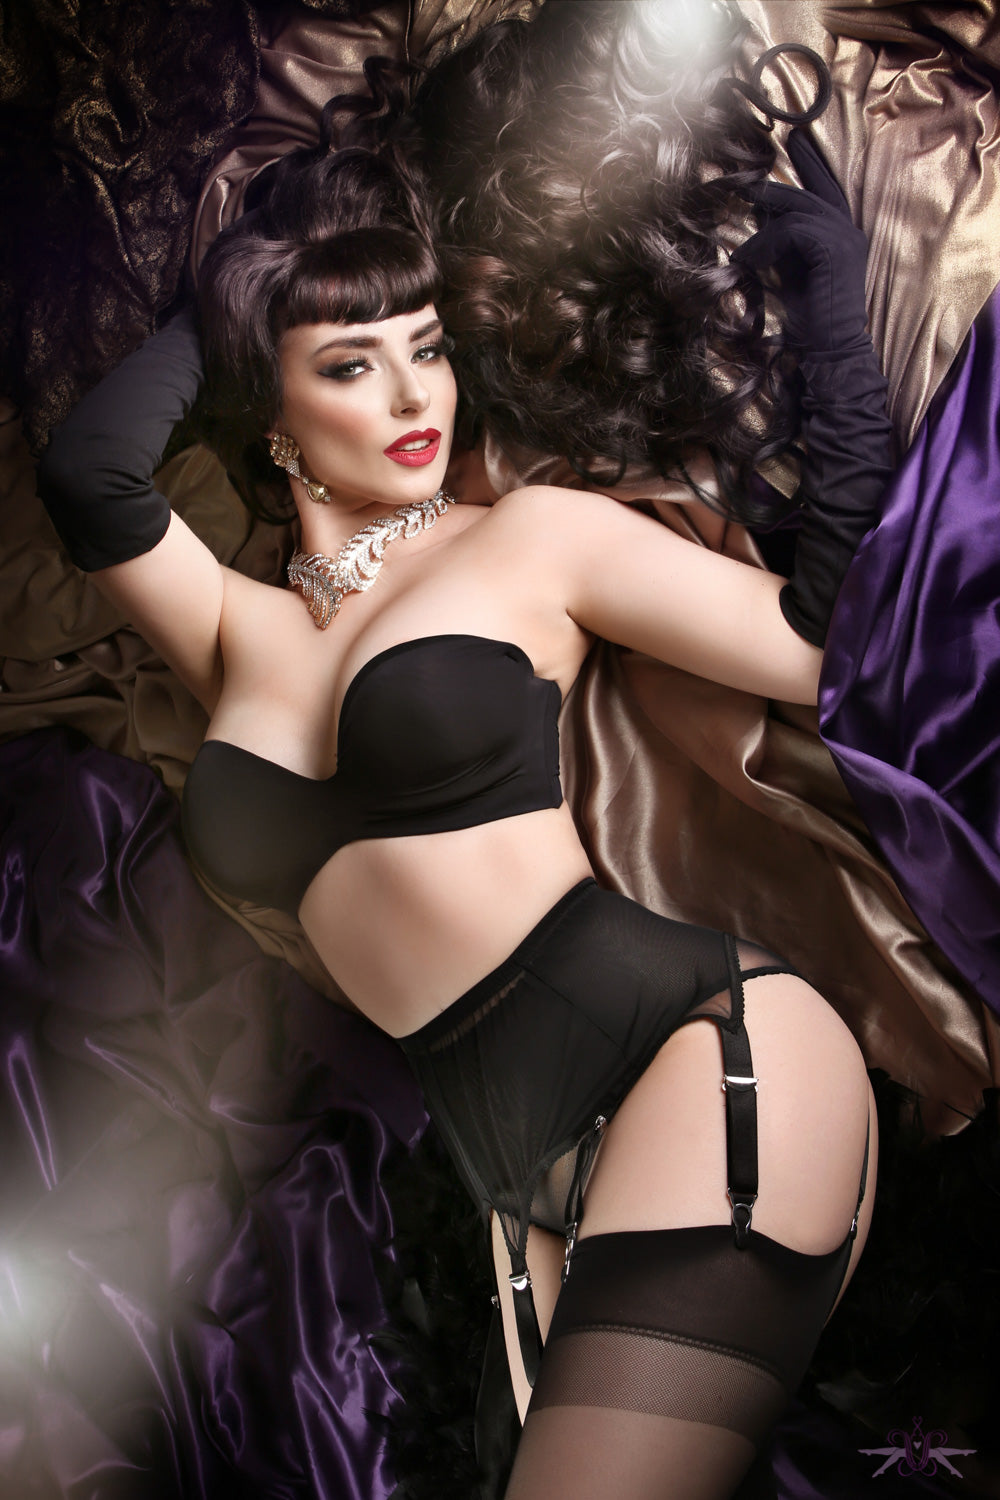 Introducing Sofia, Sheer Italian Stockings by Mayfair